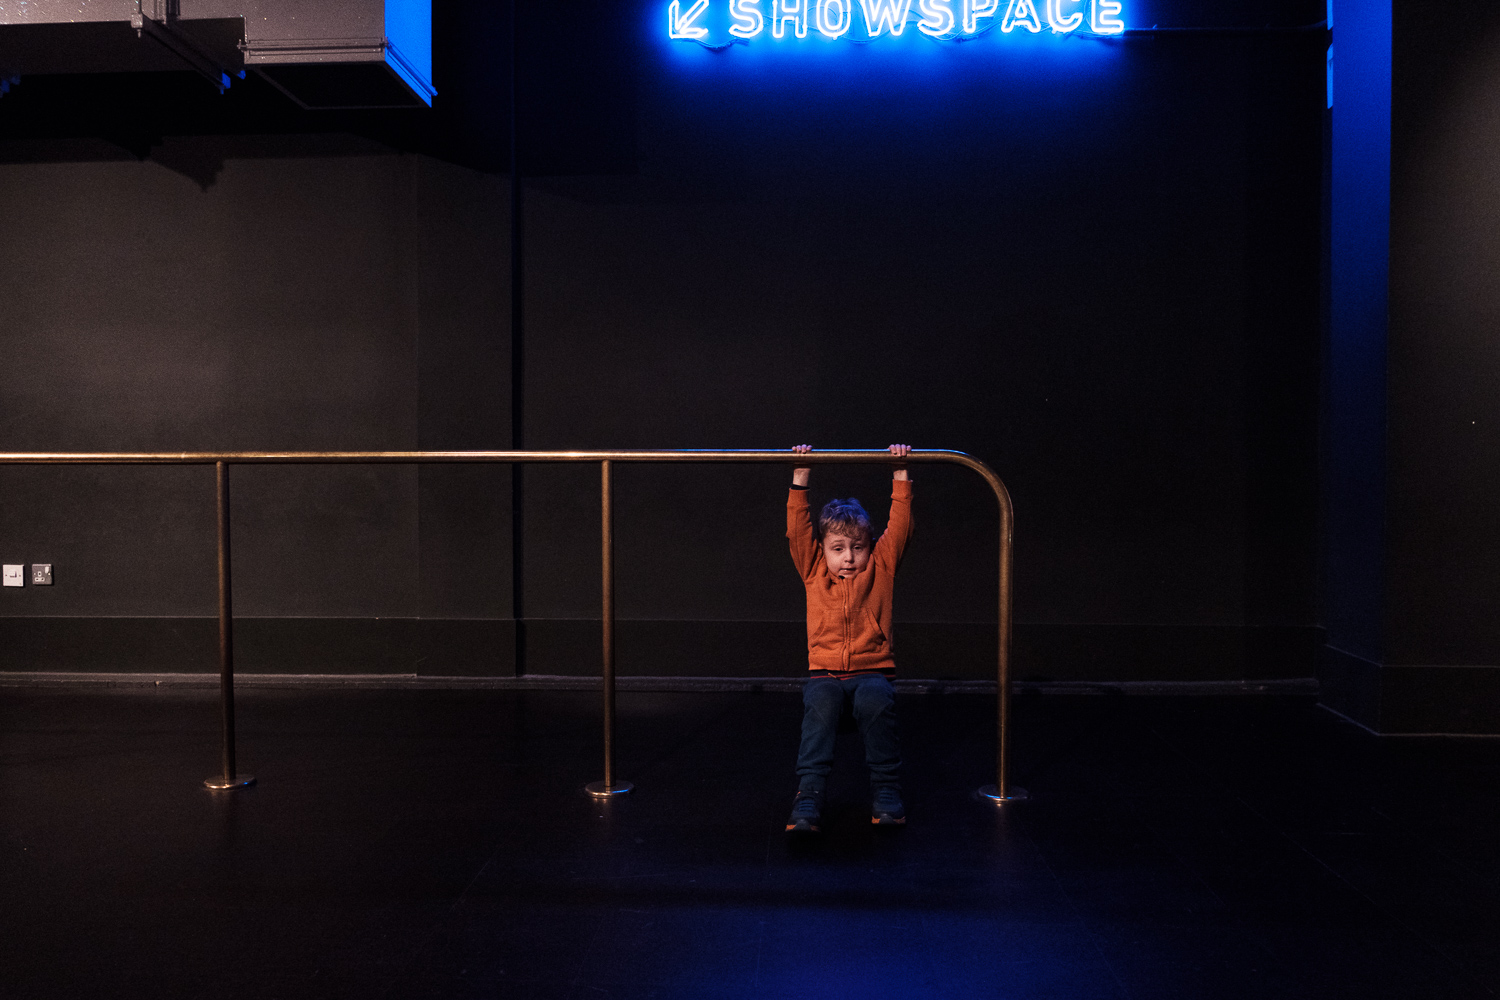 Child hanging from a metal railing at a museum.